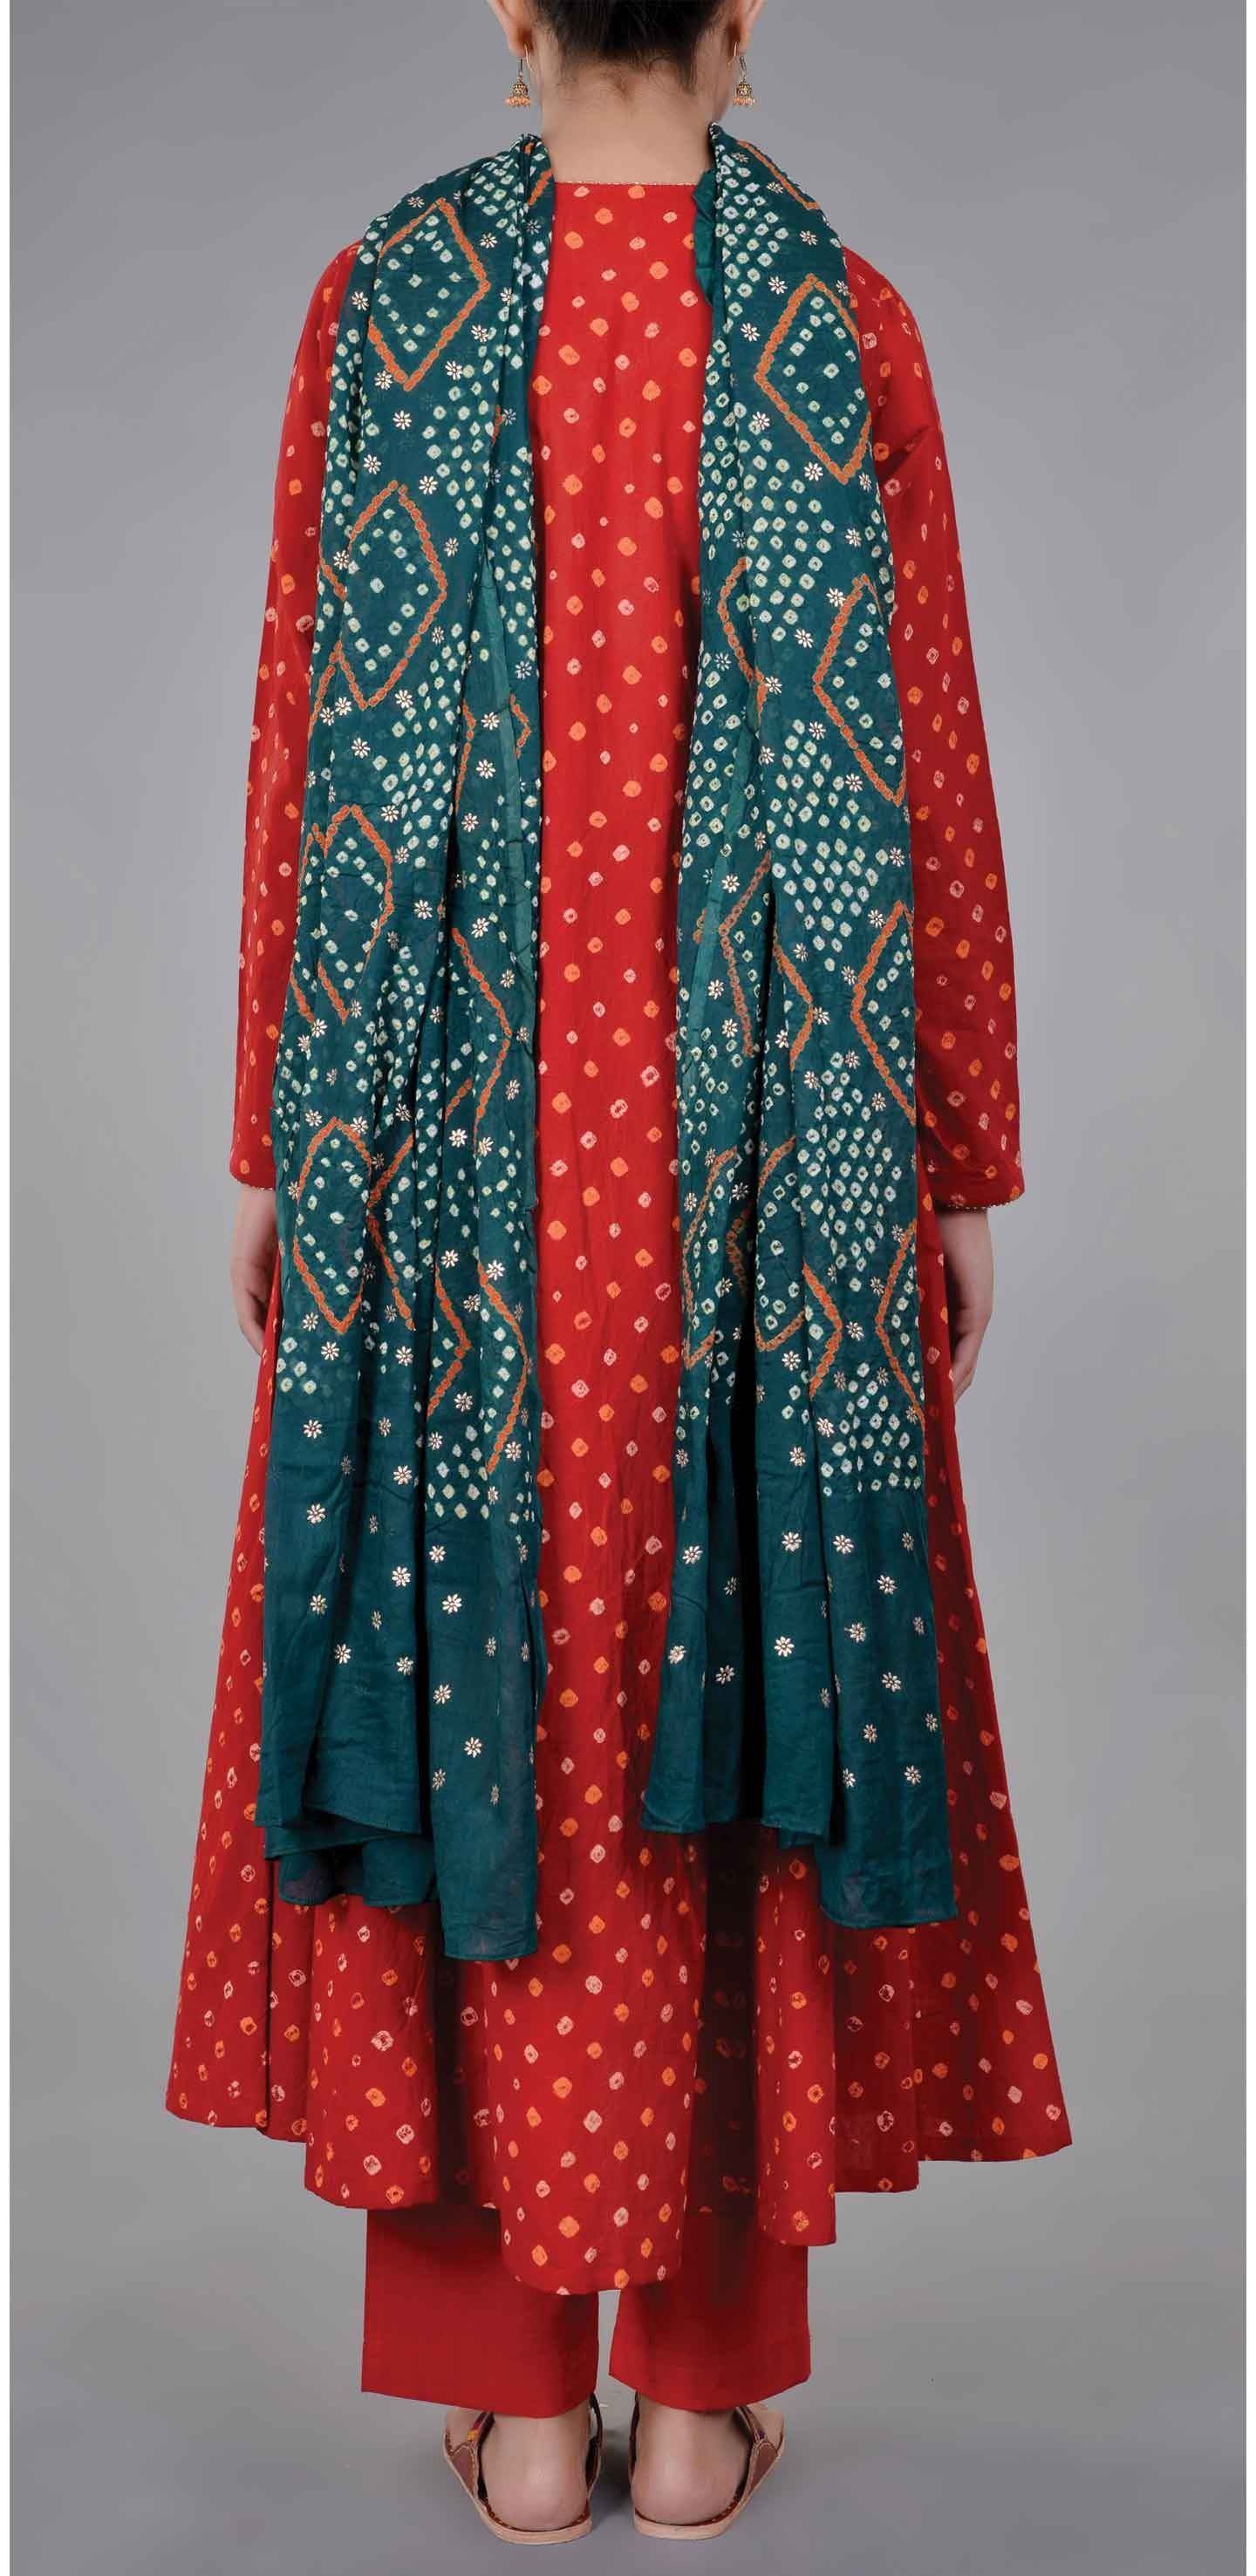 d171a24ab1759 Red Cotton Bandhani Kurta with Pants and Gold Print Dupatta Price in India  – Buy Red Cotton Bandhani Kurta with Pants and Gold Print Dupatta Online ...